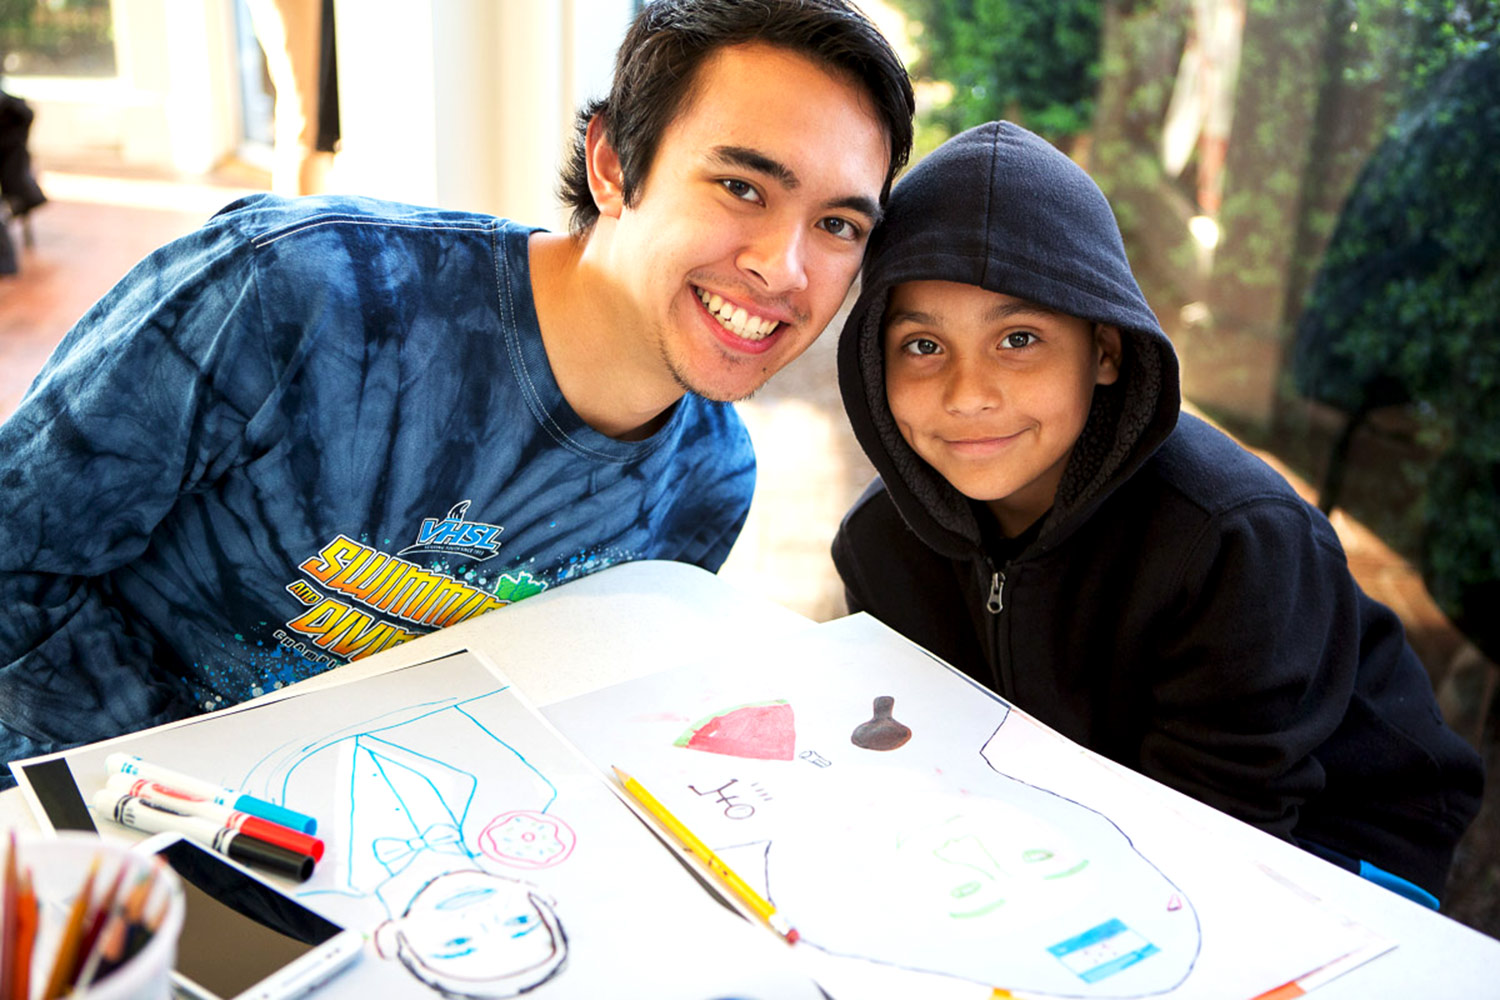 Second-year student Jacob McLaughlin and his mentee work on their self portraits. (Photos by Stacey Evans)